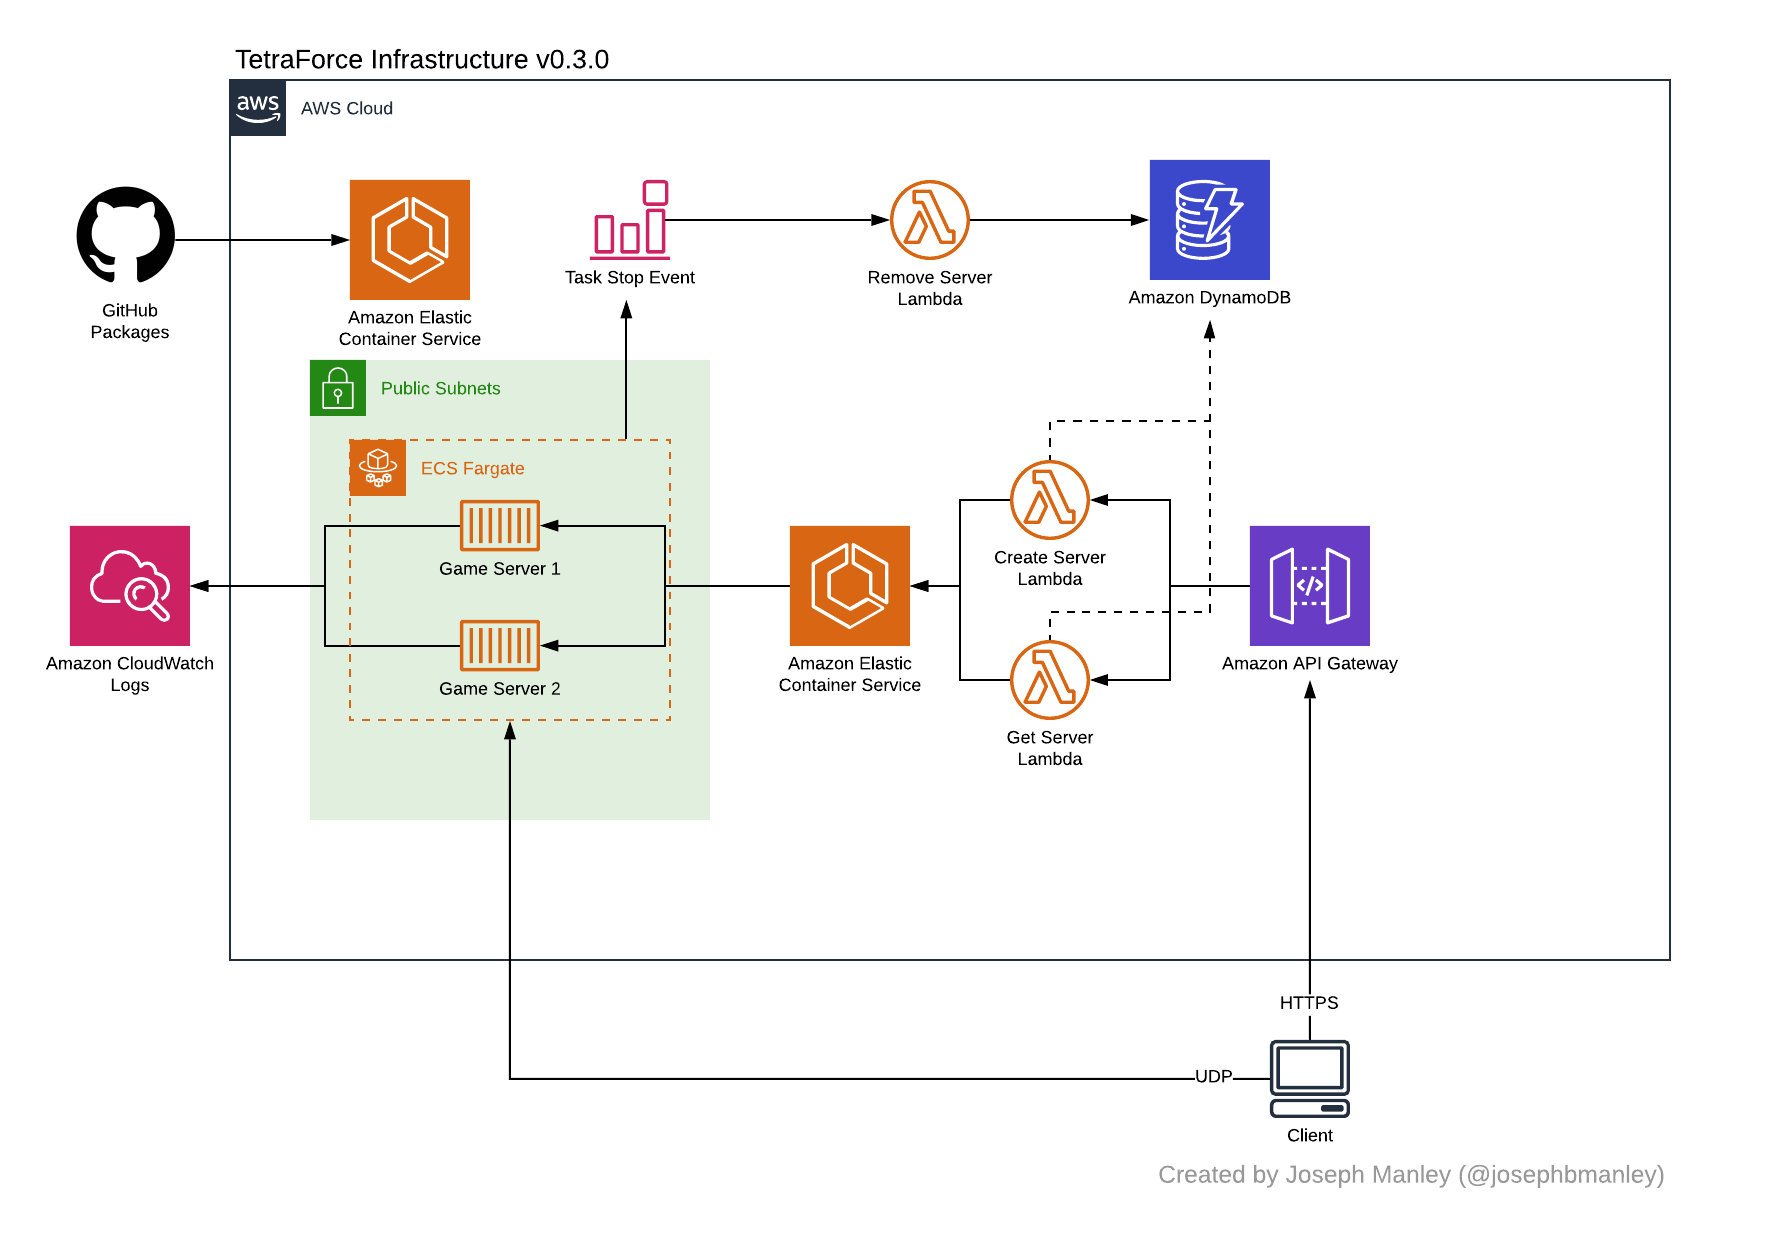 AWS Diagram displaying which services are used within TetraForce's cloud infrastructure